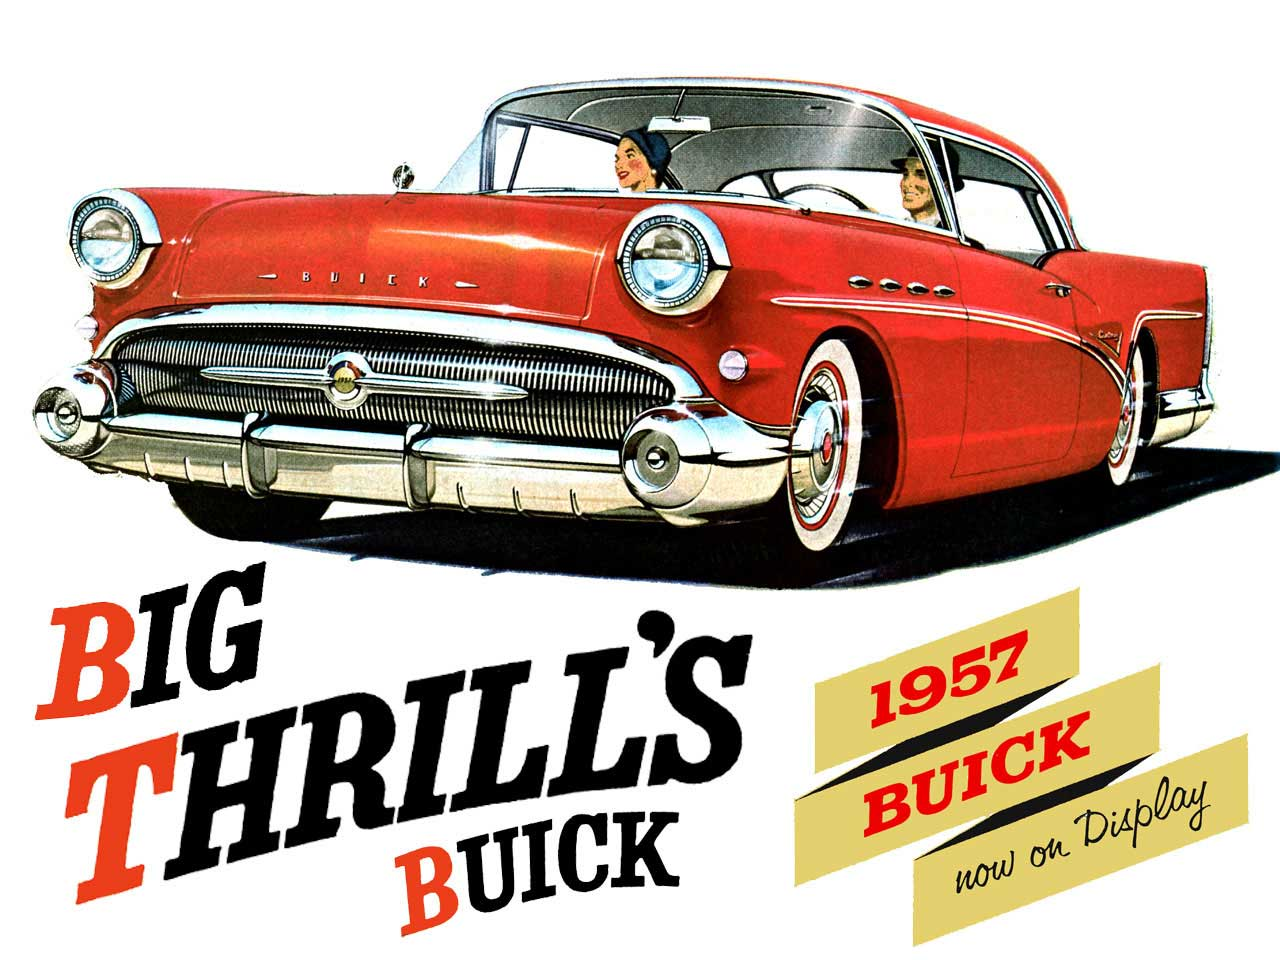 1957 buick owners guide hometown buick1957 buick big thrills buick